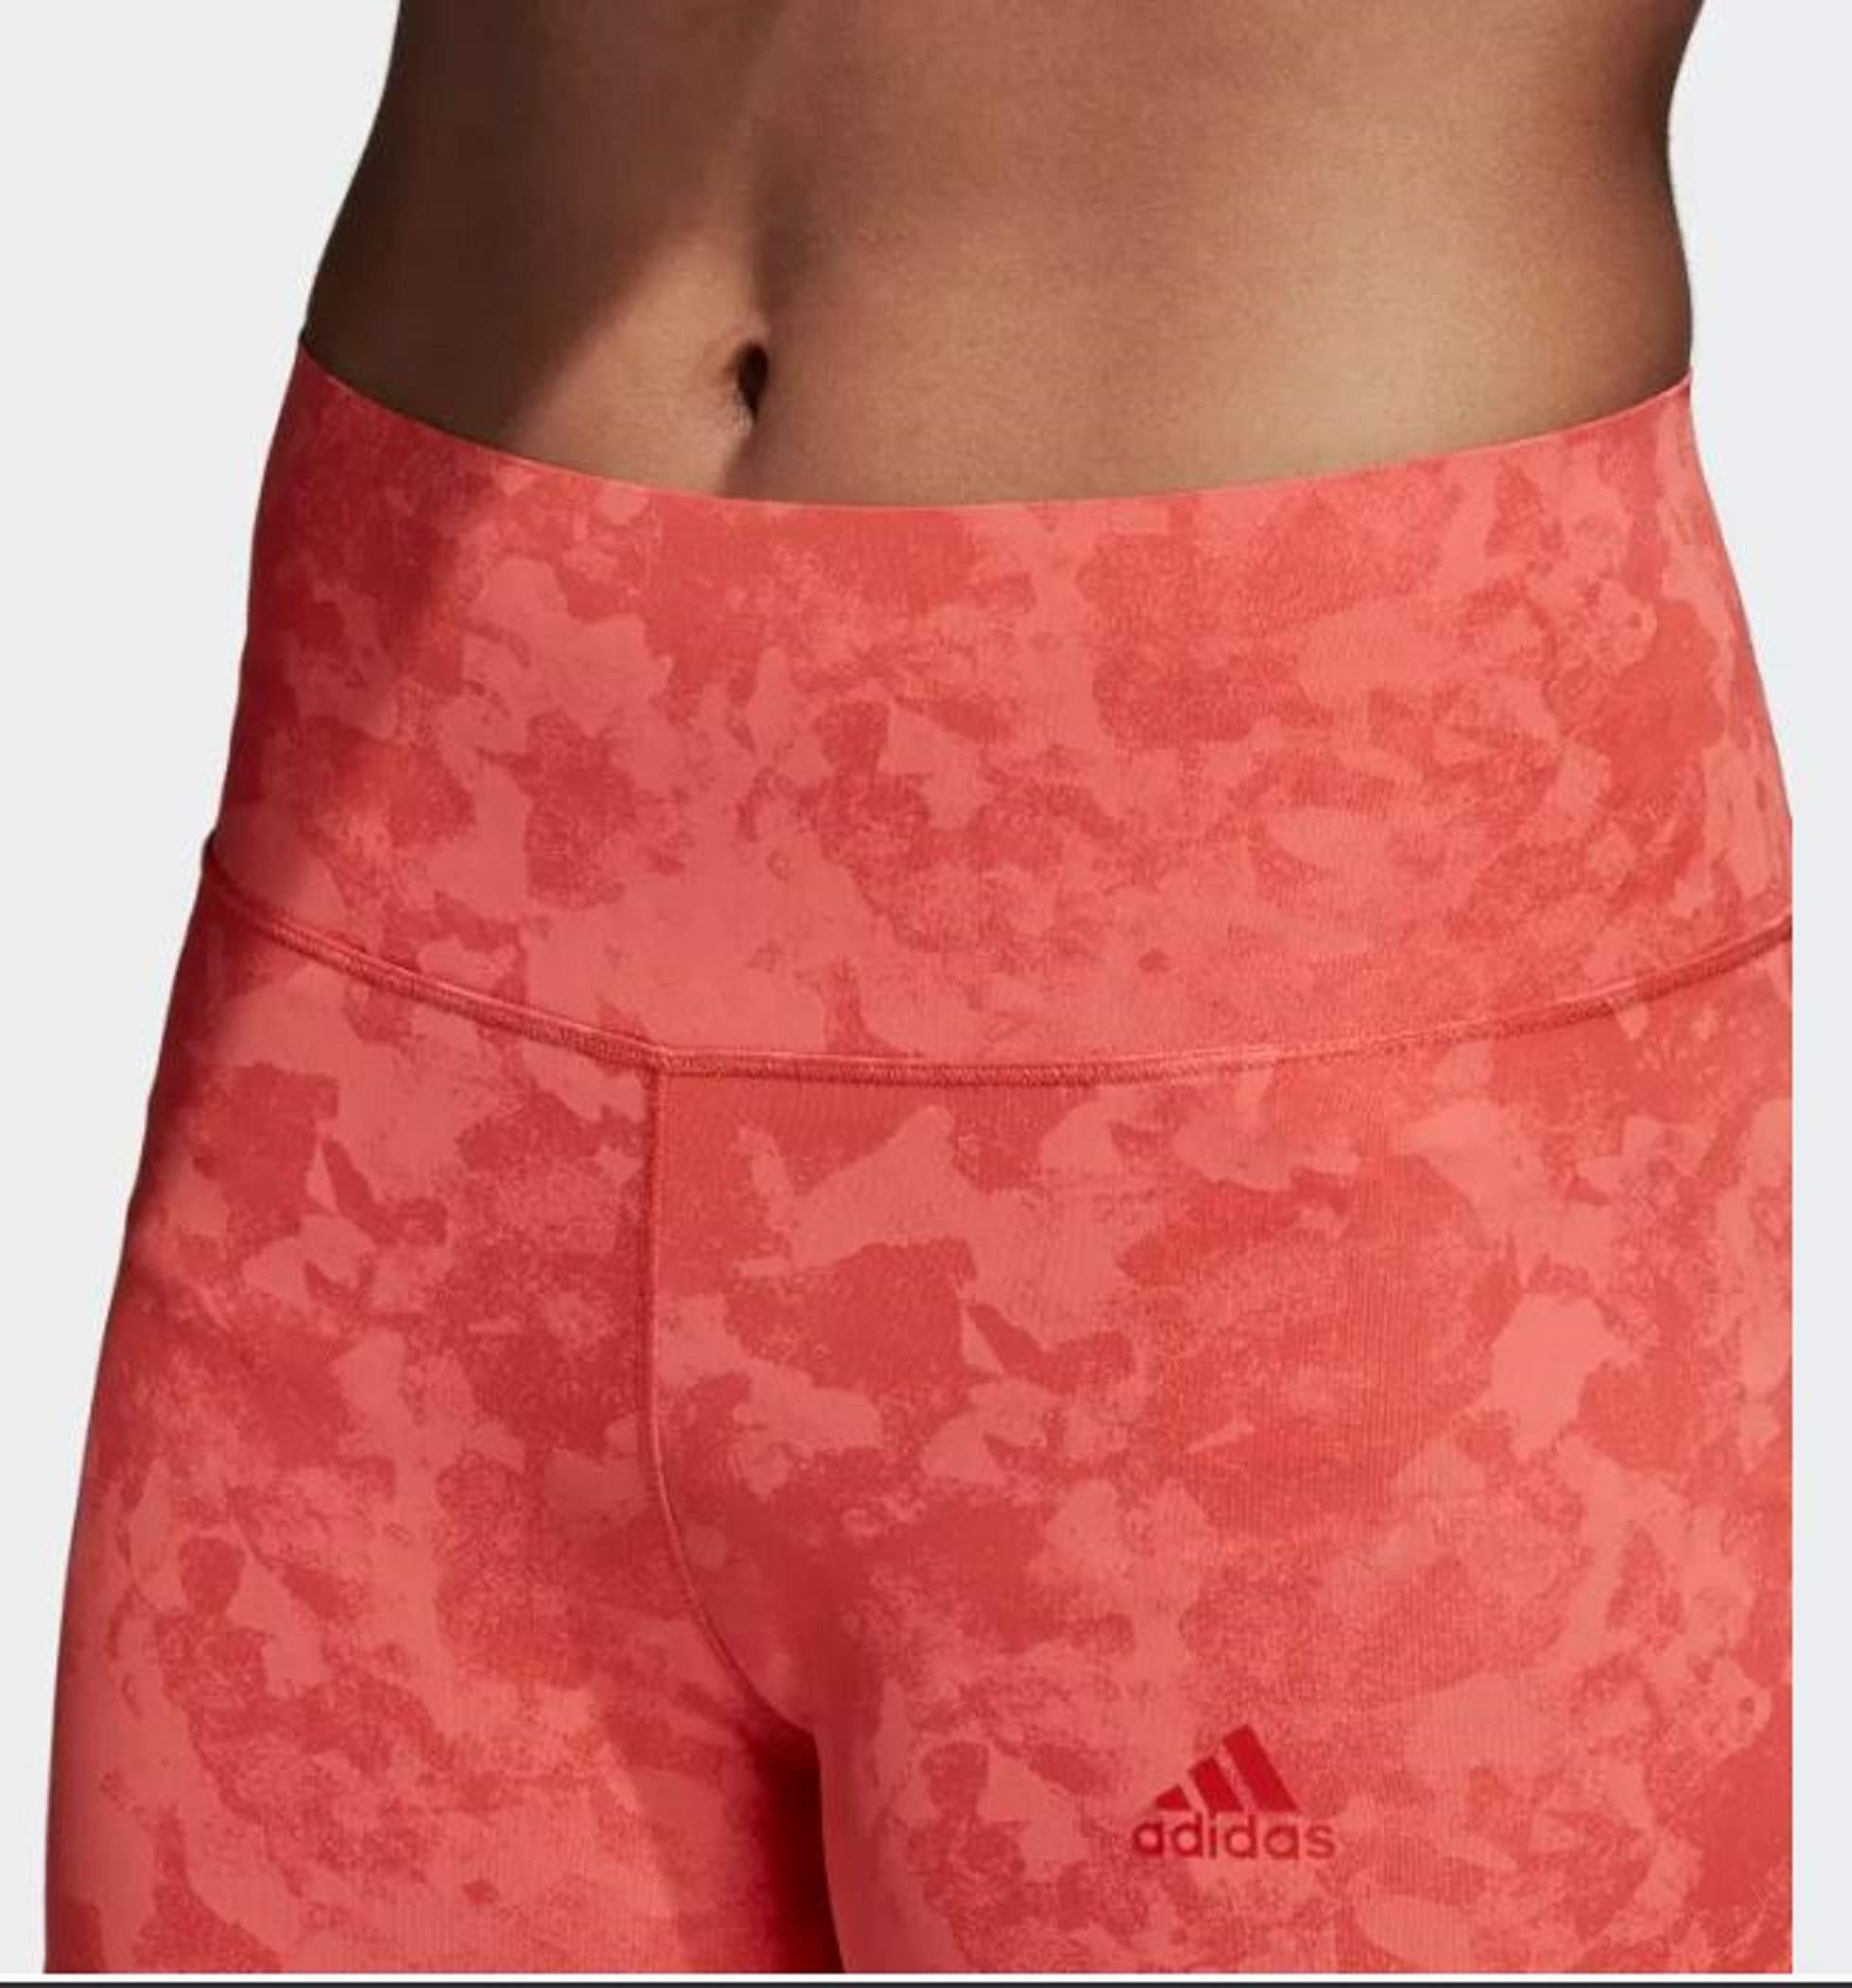 adidas Women's Climalite Ultimate High Rise Printed Long Tights, Trace Scarlet/Print, Small by adidas (Image #8)